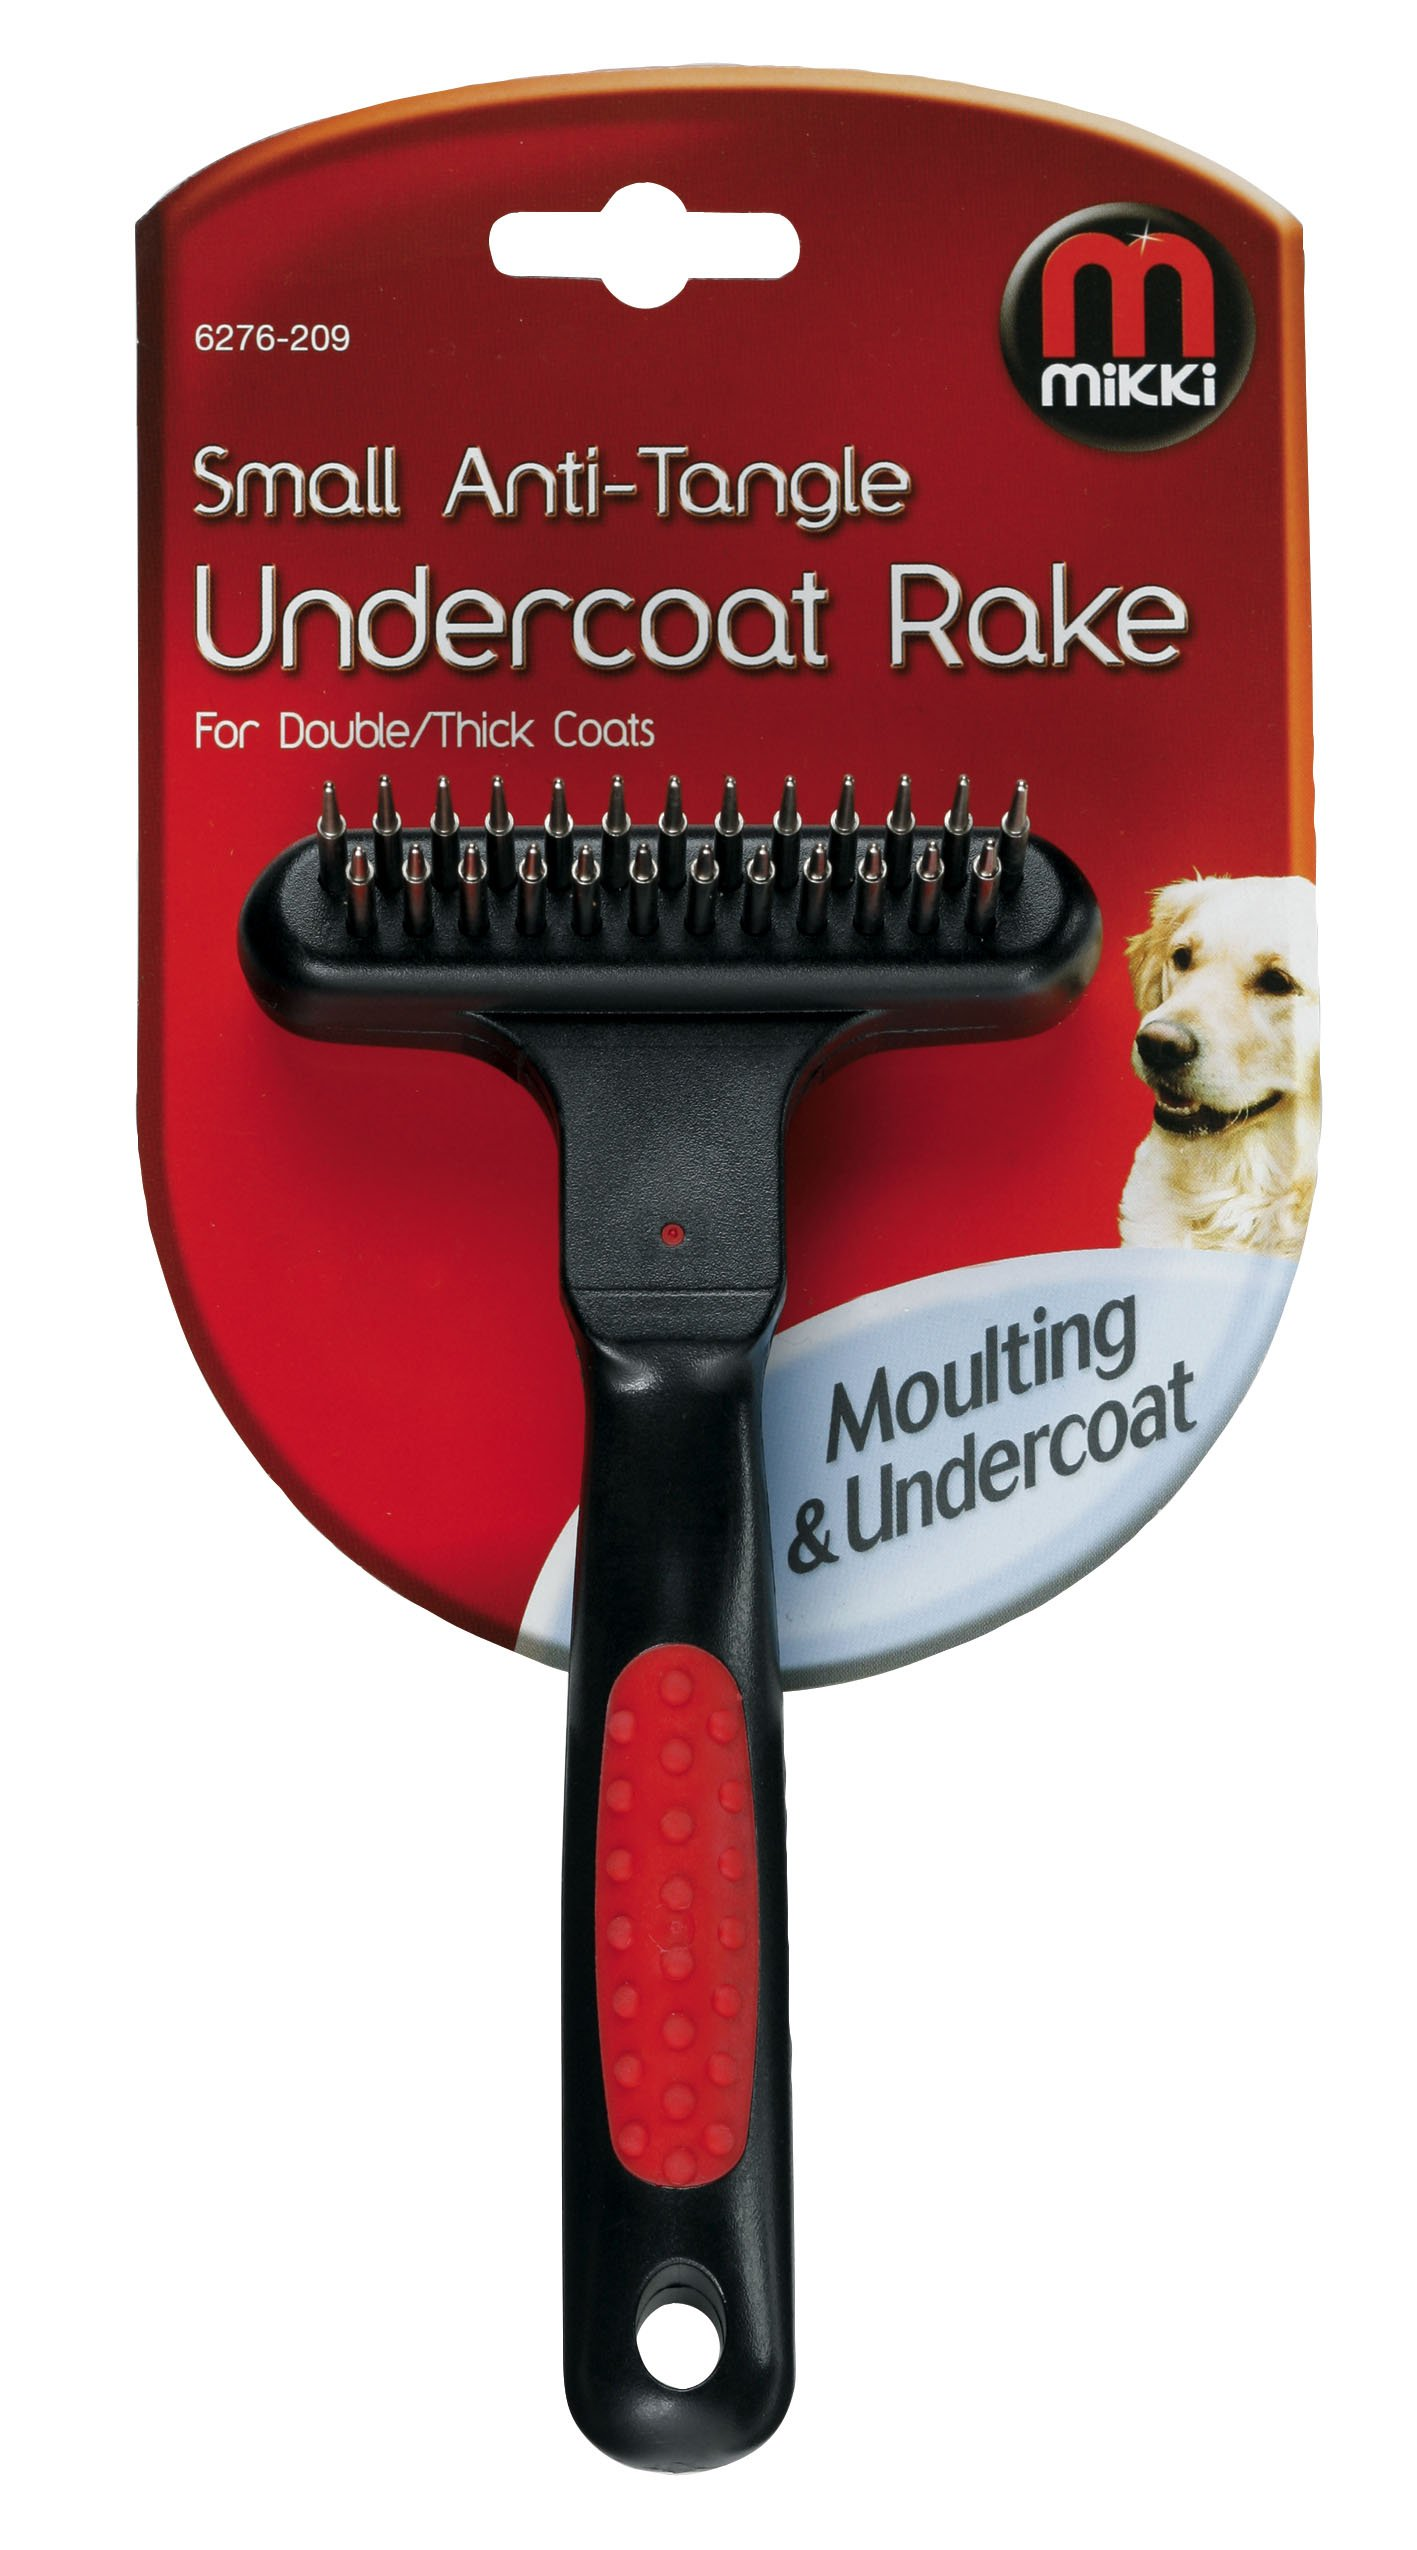 Interpet Mikki Anti-tangle Undercoat Rake Double/Thick Coat Small by Mikki